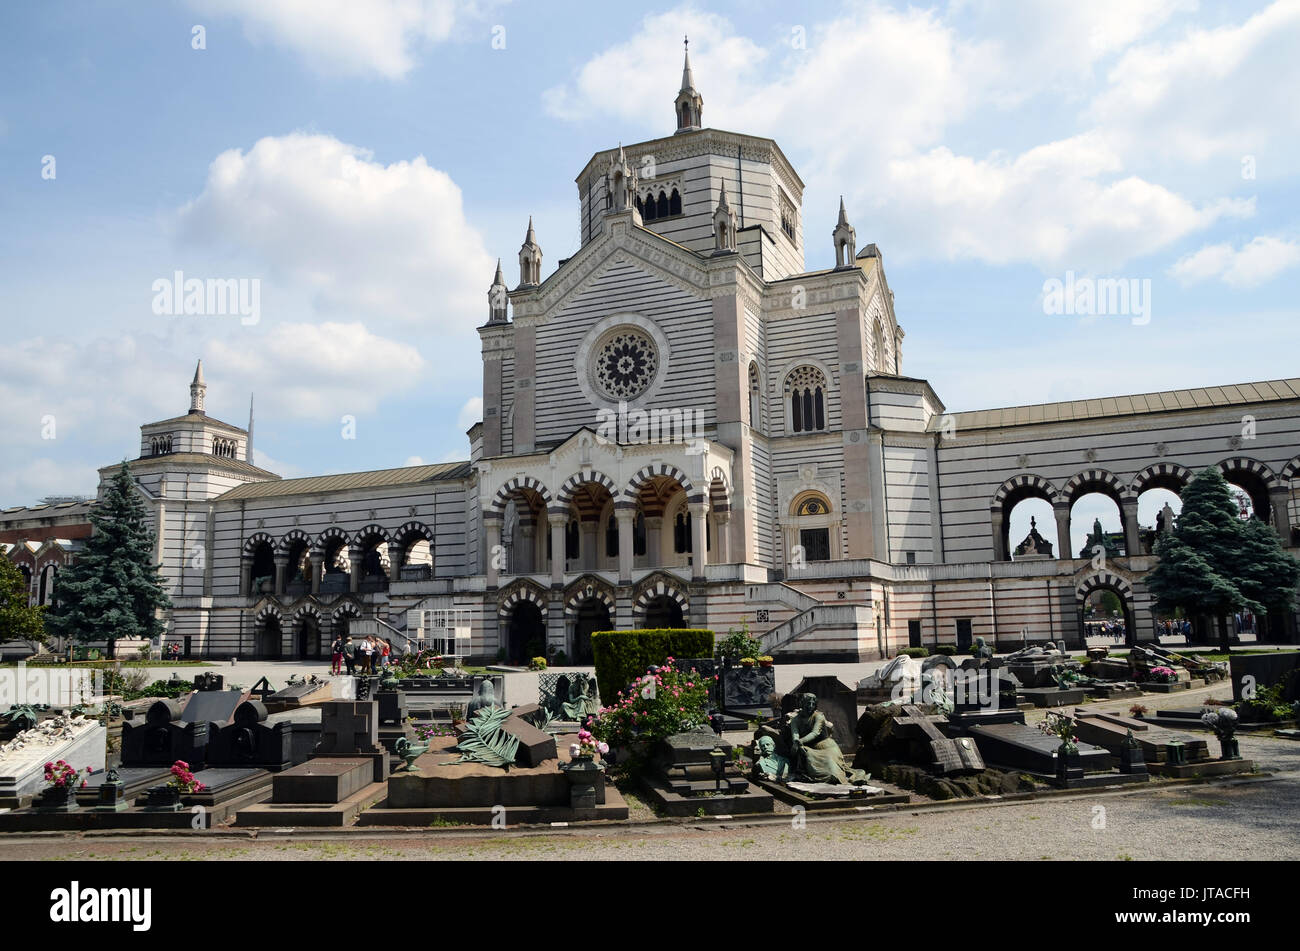 The Monumental Cemetery, more than just a simple cemetery, is an extraordinary outdoor museum, Milan, Lombardy, Italy, Europe - Stock Image